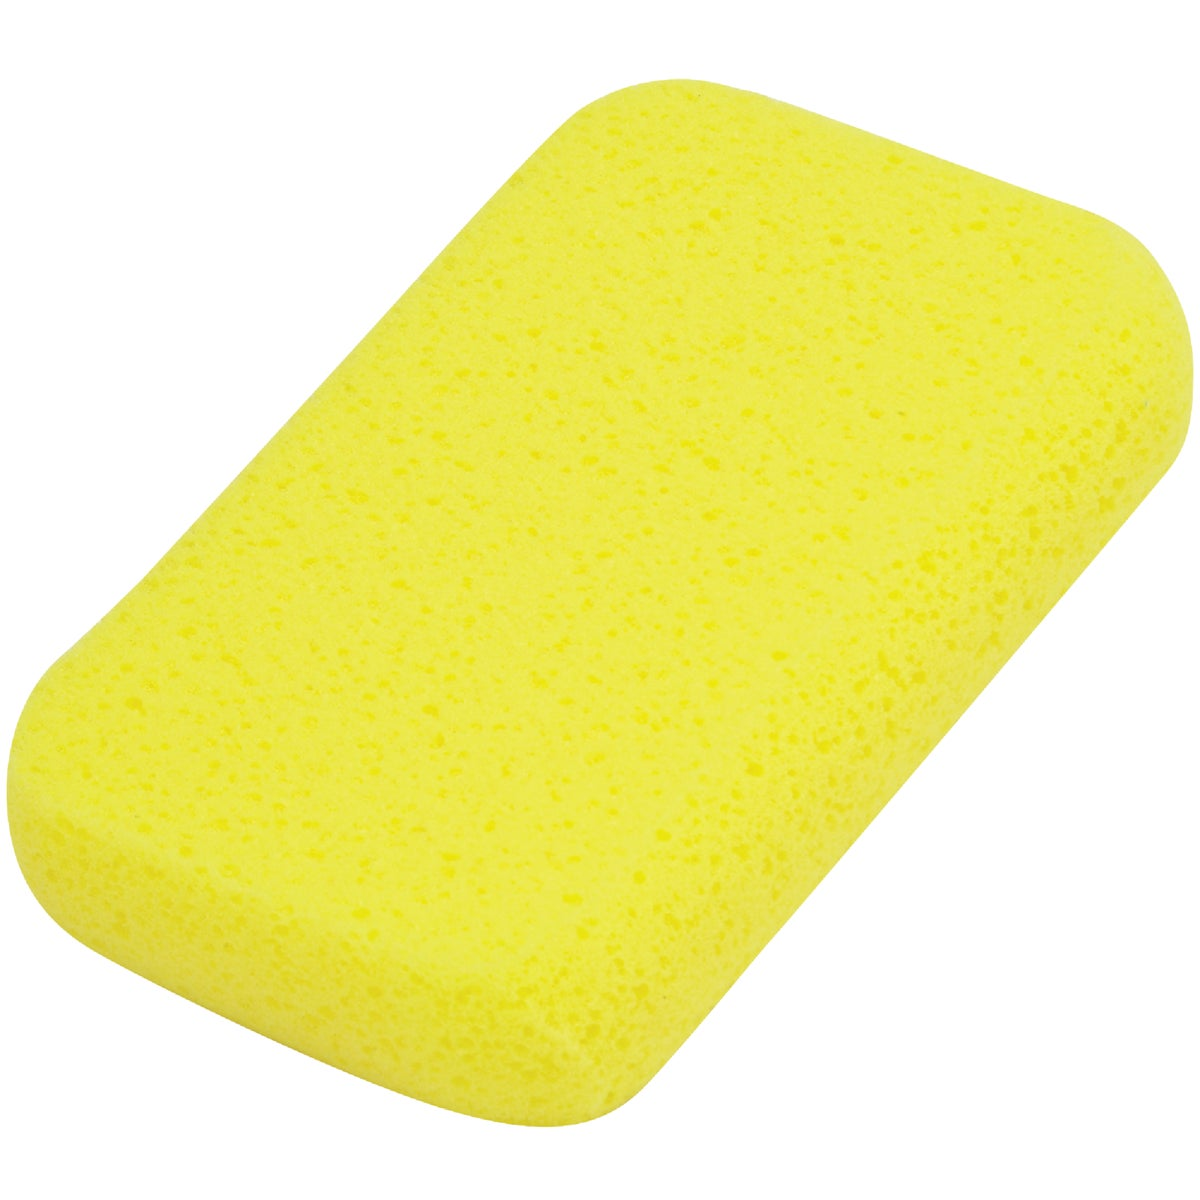 TILE GROUT SPONGE - 309883 by Do it Best